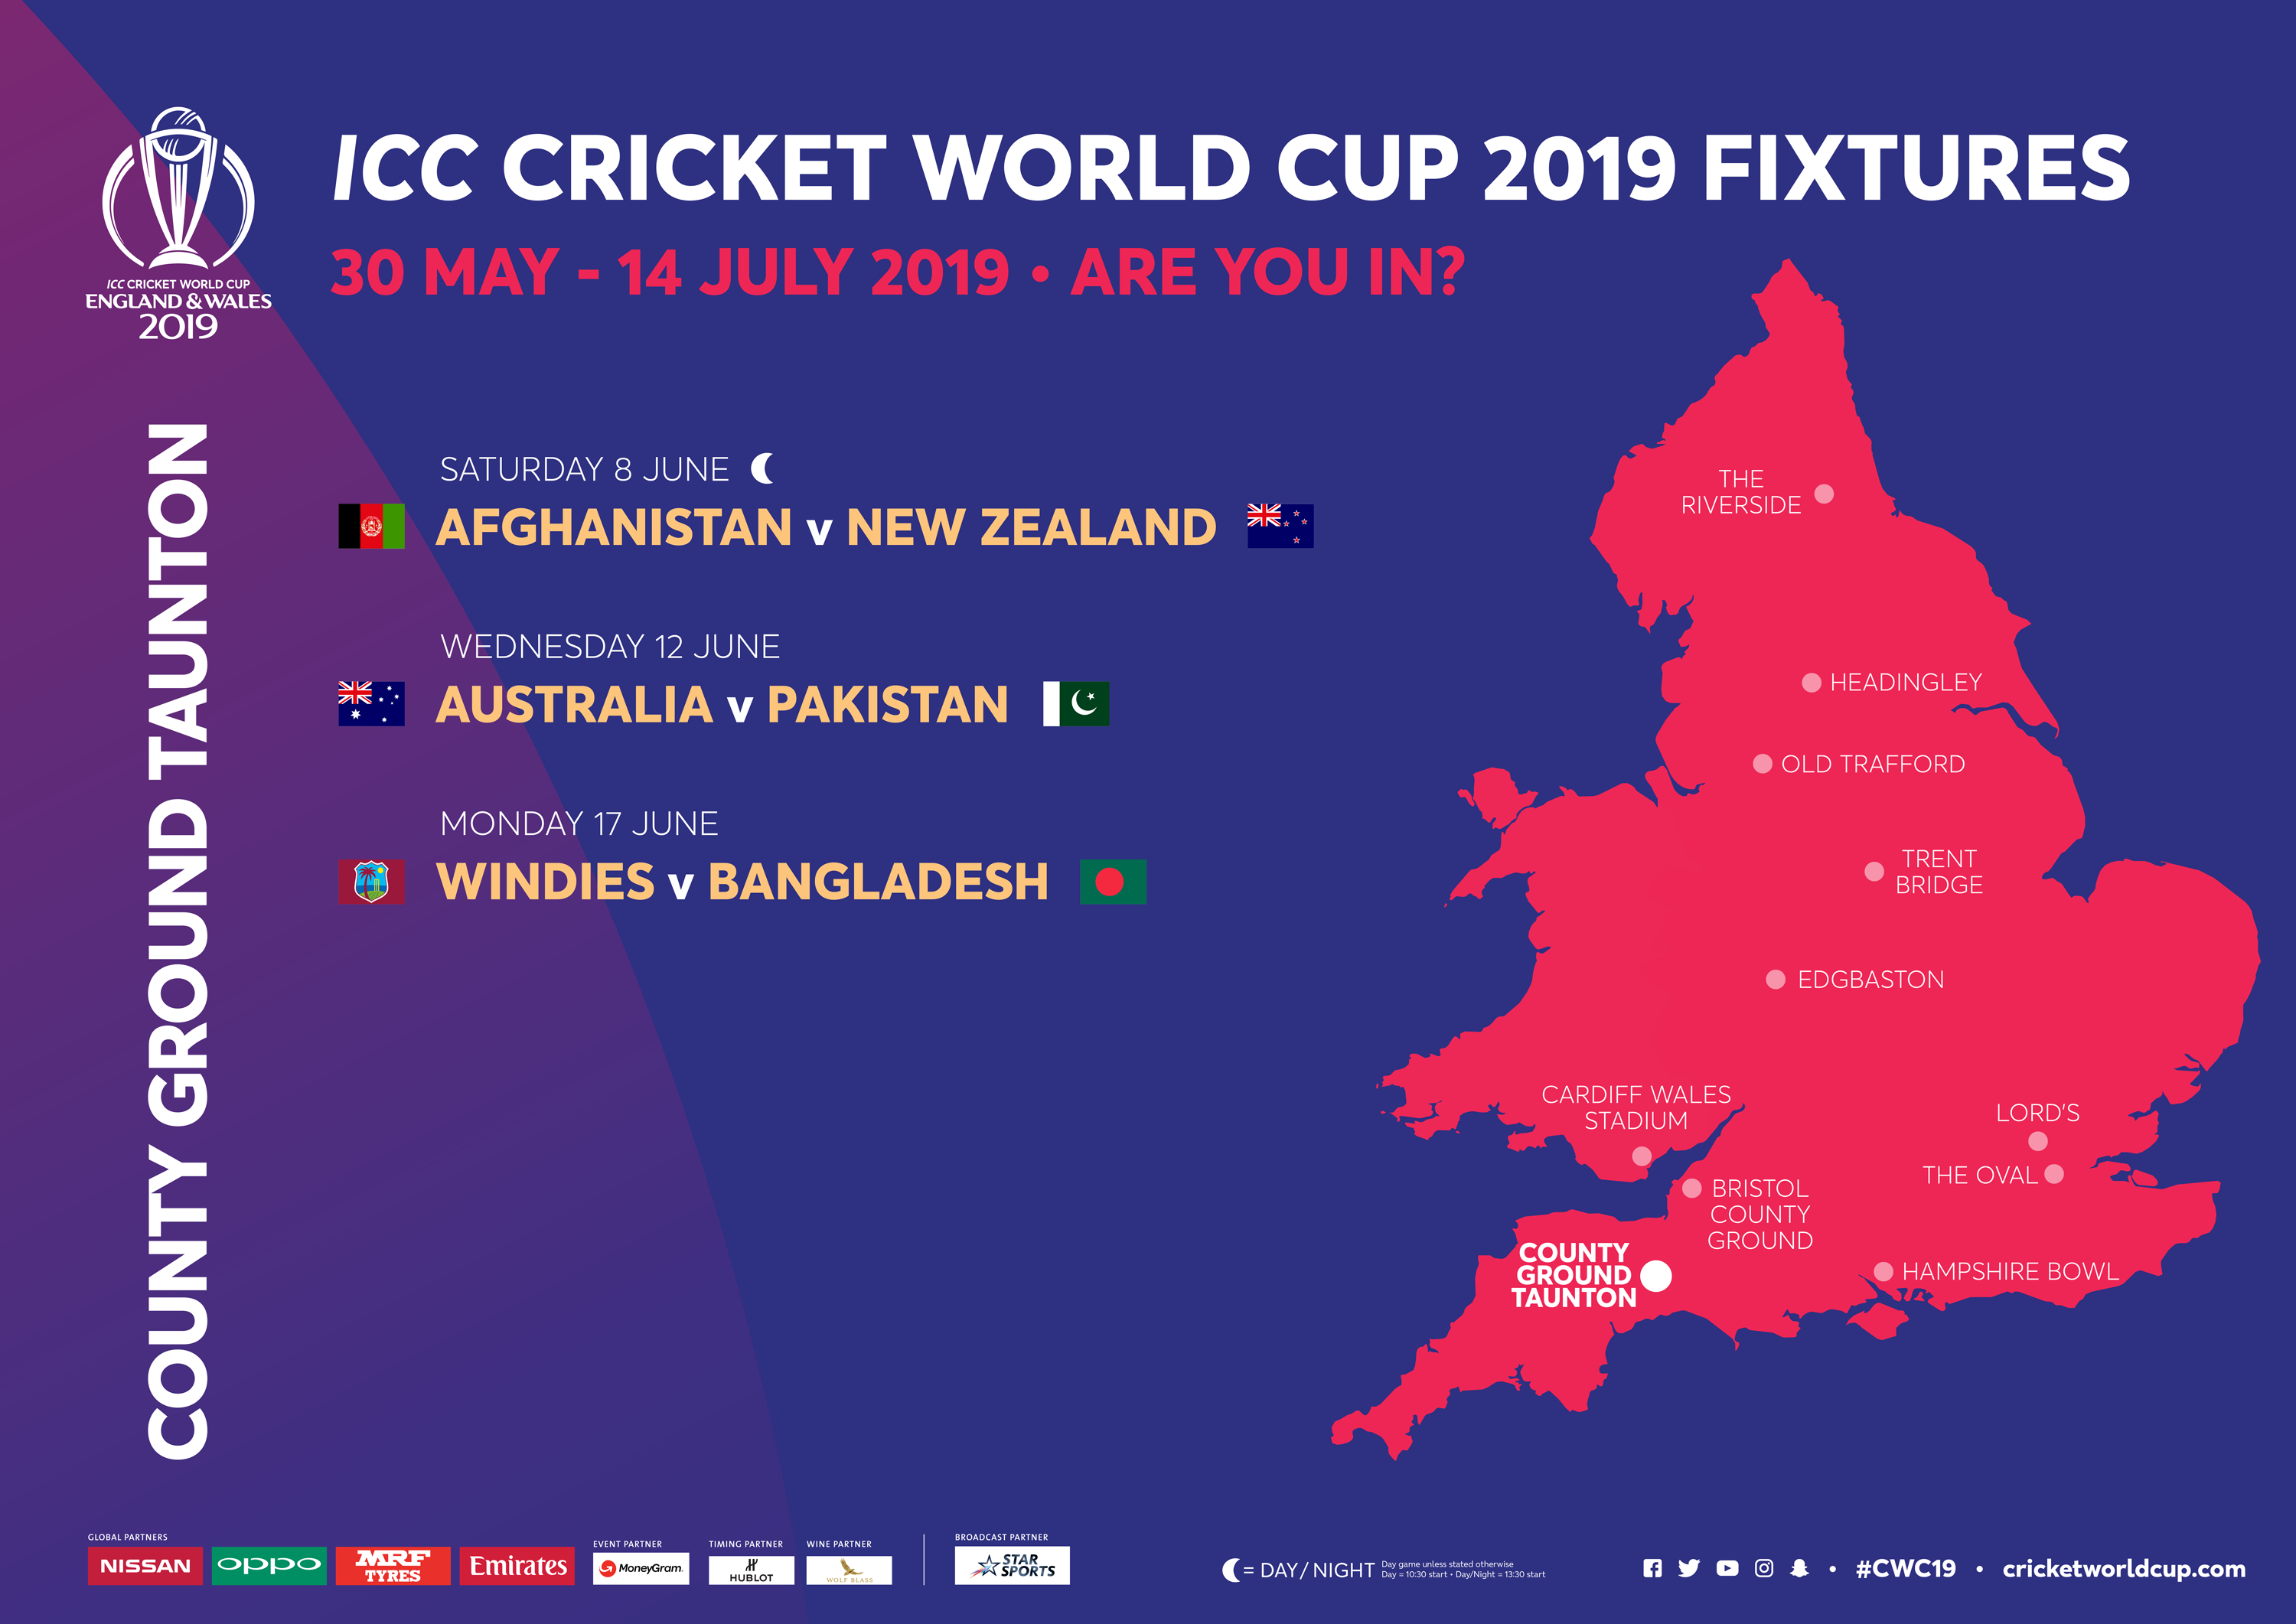 ICC CRICKET WORLD CUP 2019 LAUNCHES OFFICIAL RESALE TICKET